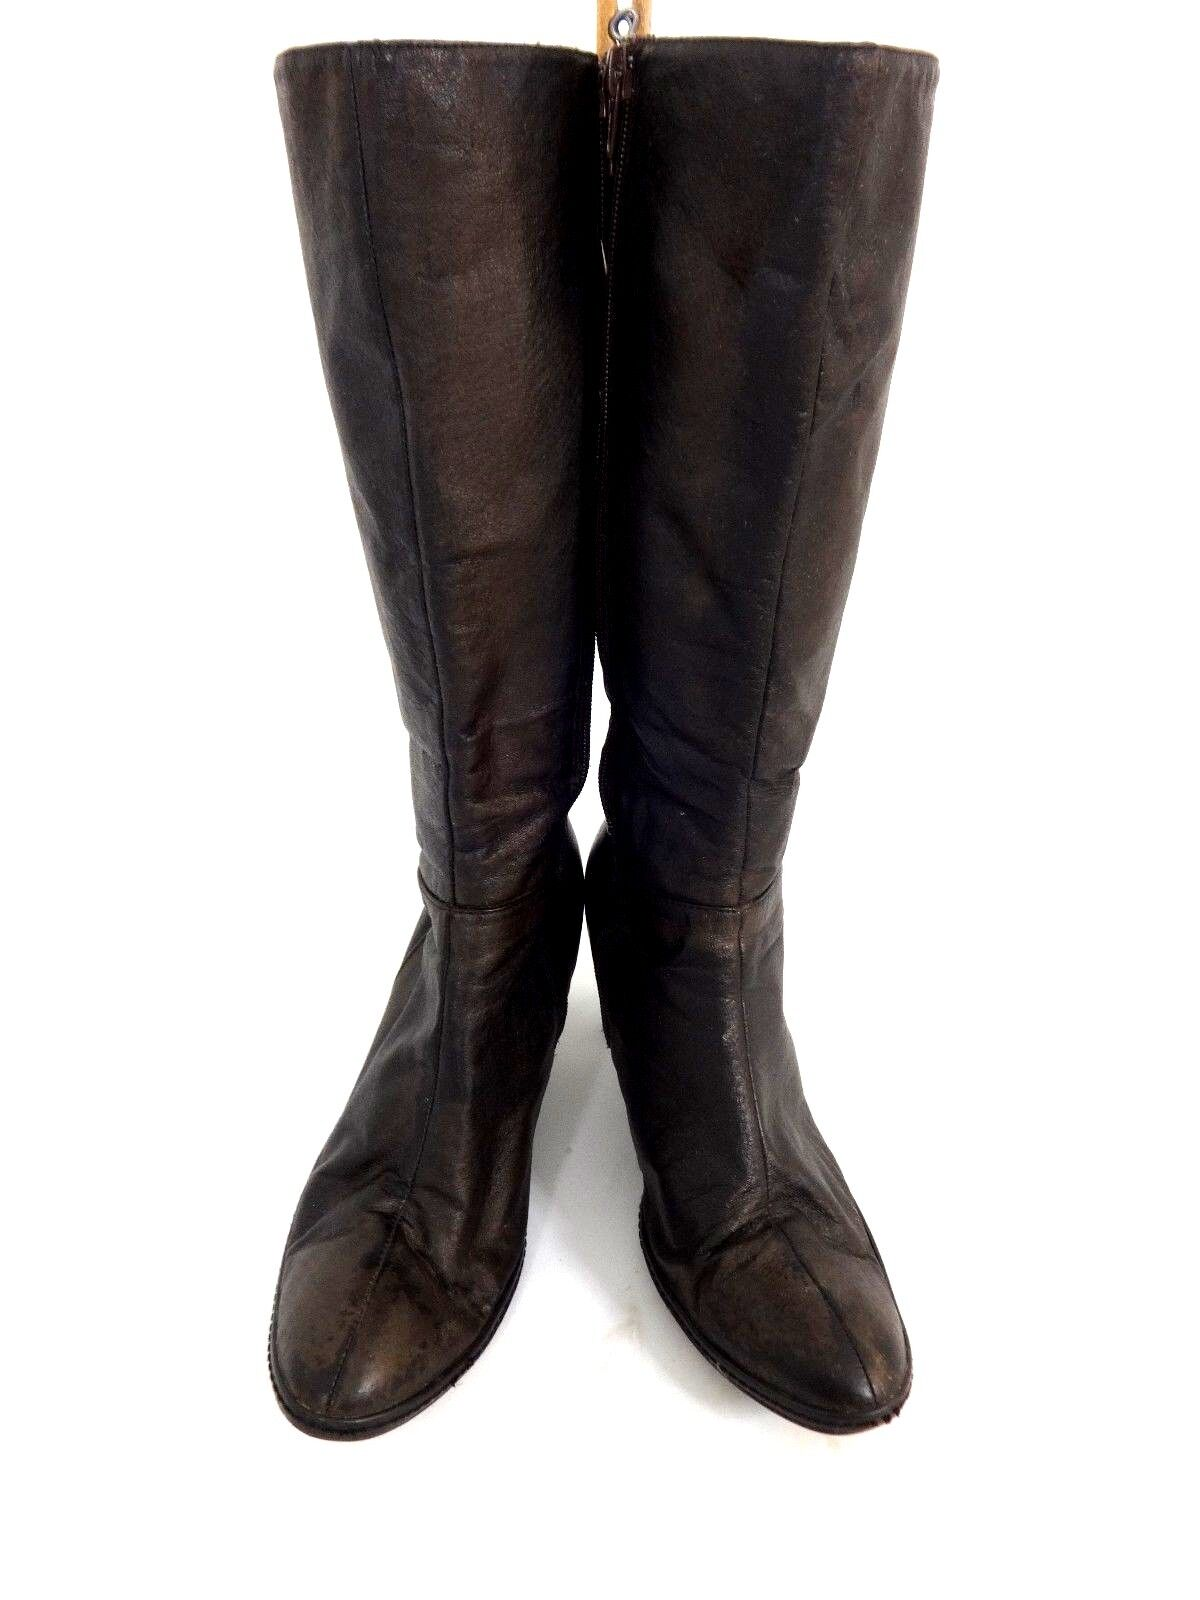 newport womens brown zip side distressed leather boots